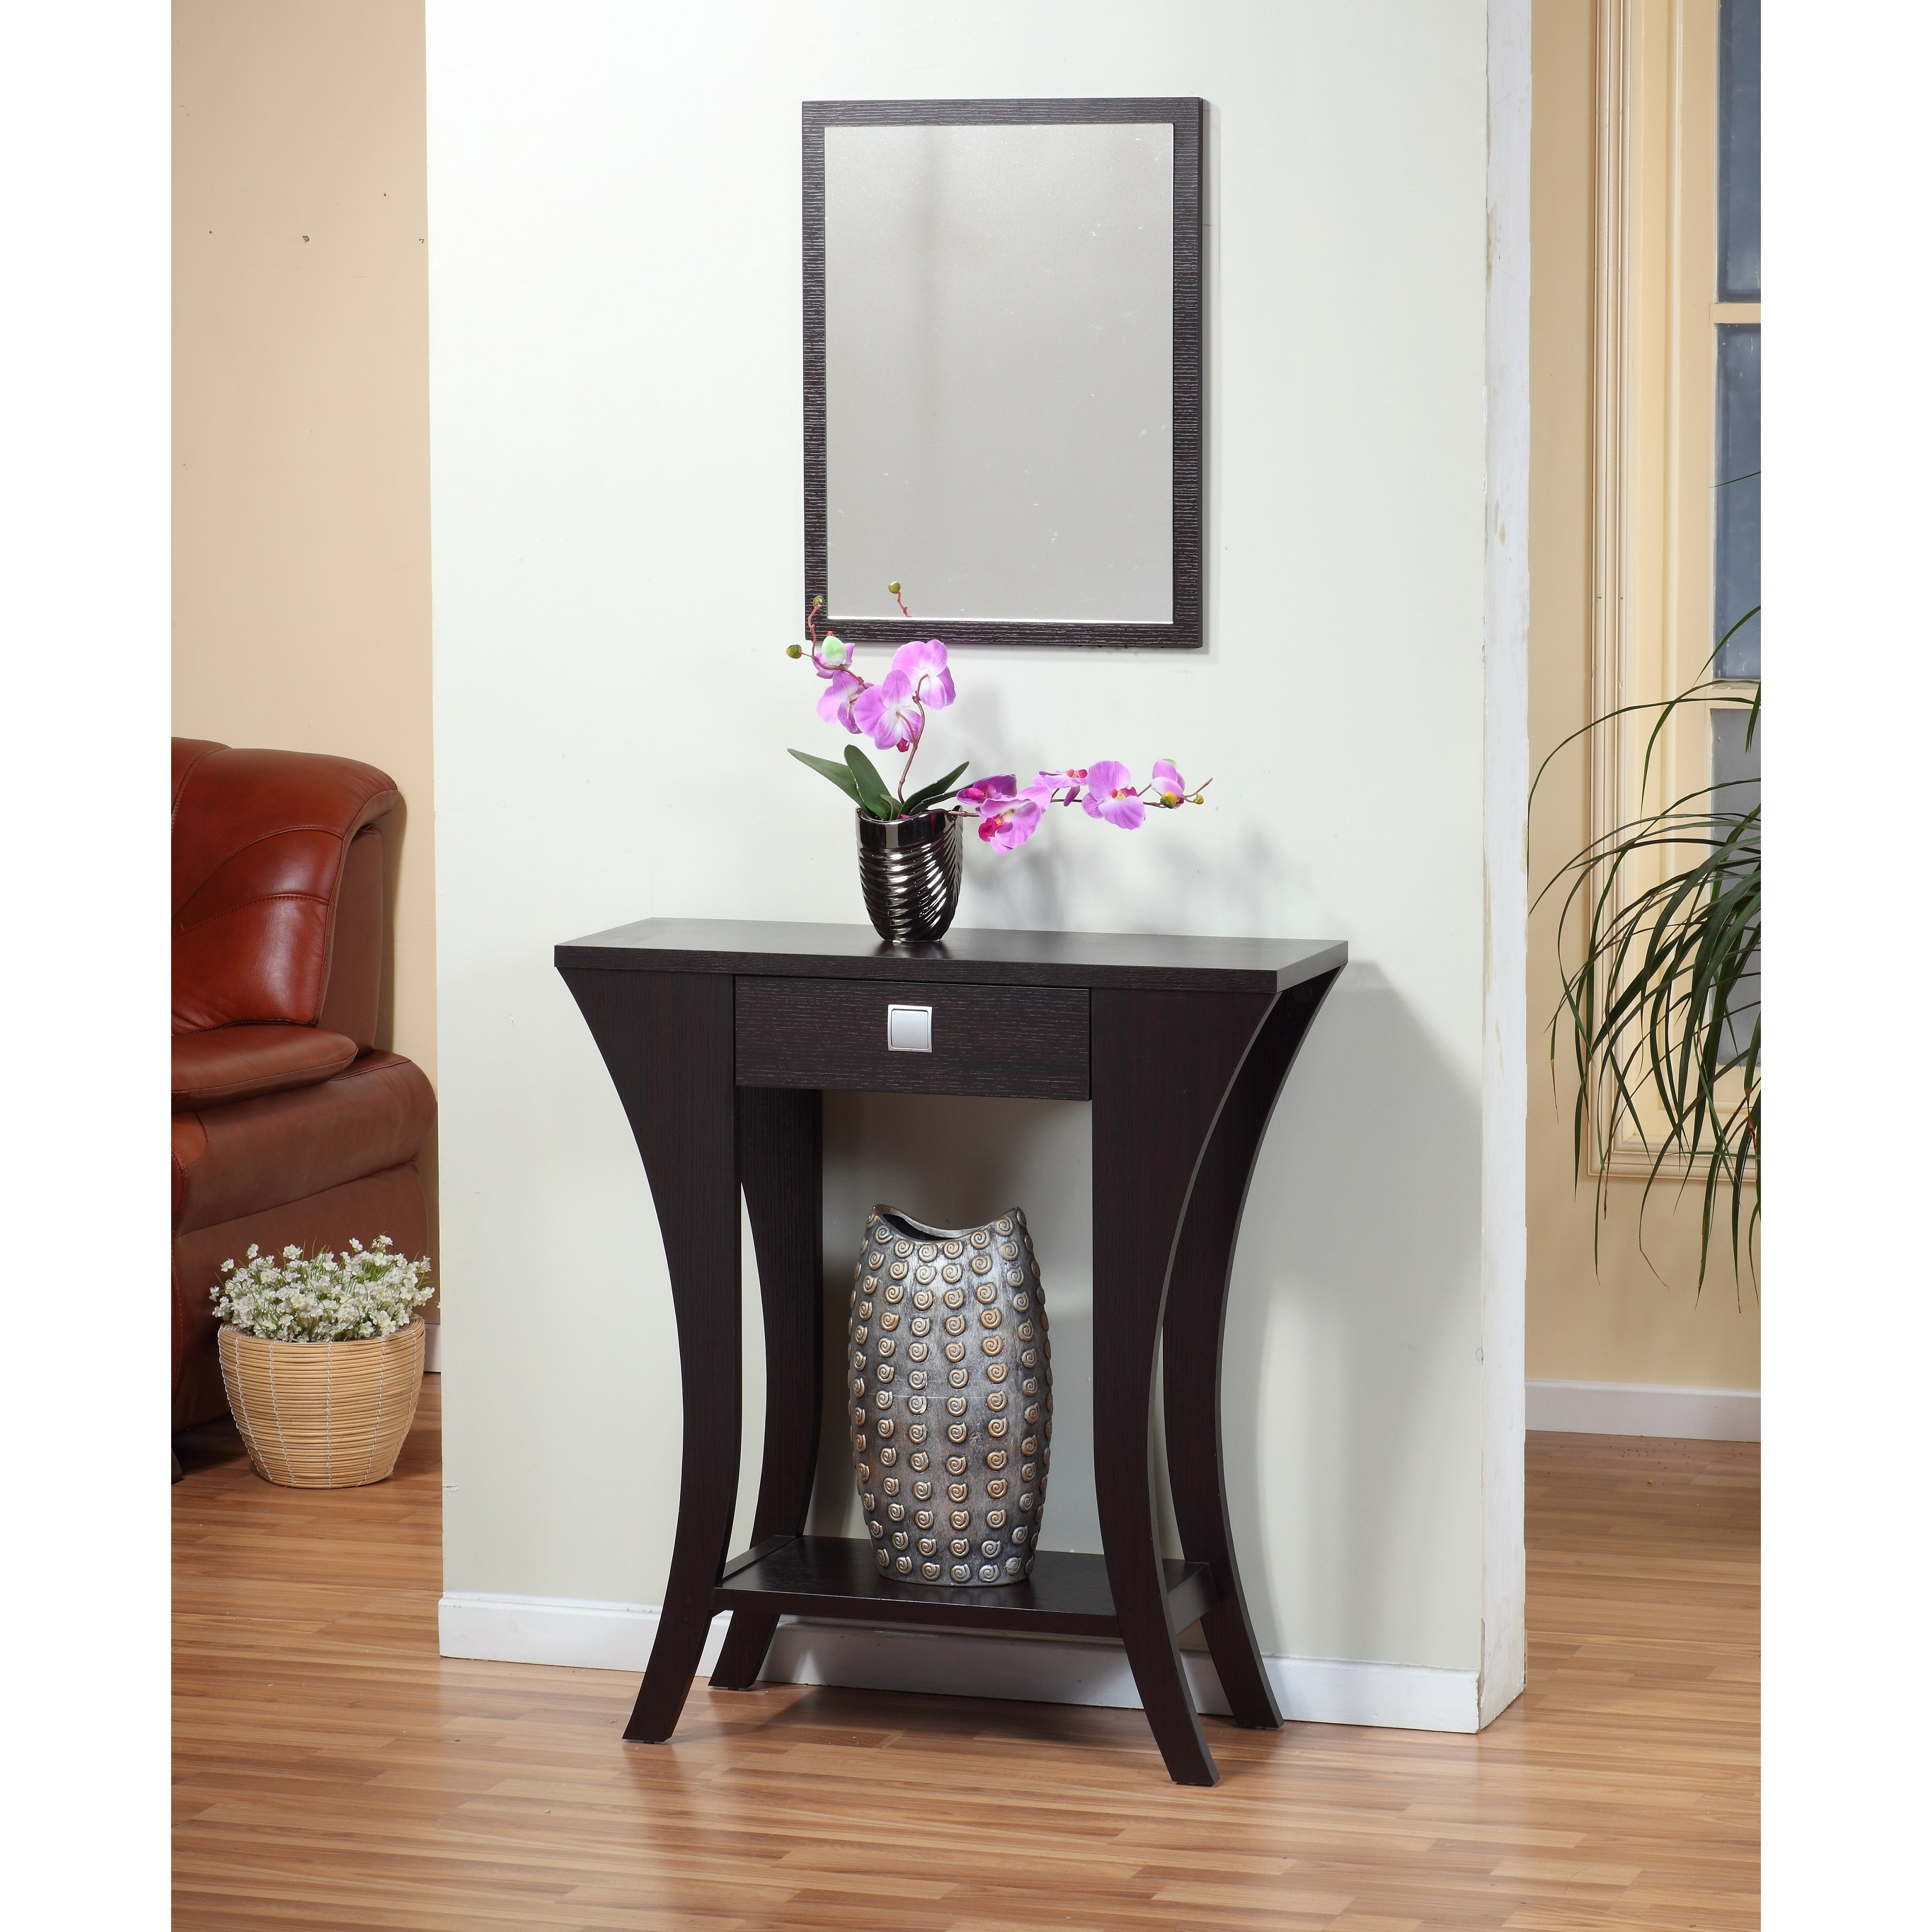 Excellent Cappuccino Finish Sofa Entry Console Table With Drawer Pabps2019 Chair Design Images Pabps2019Com